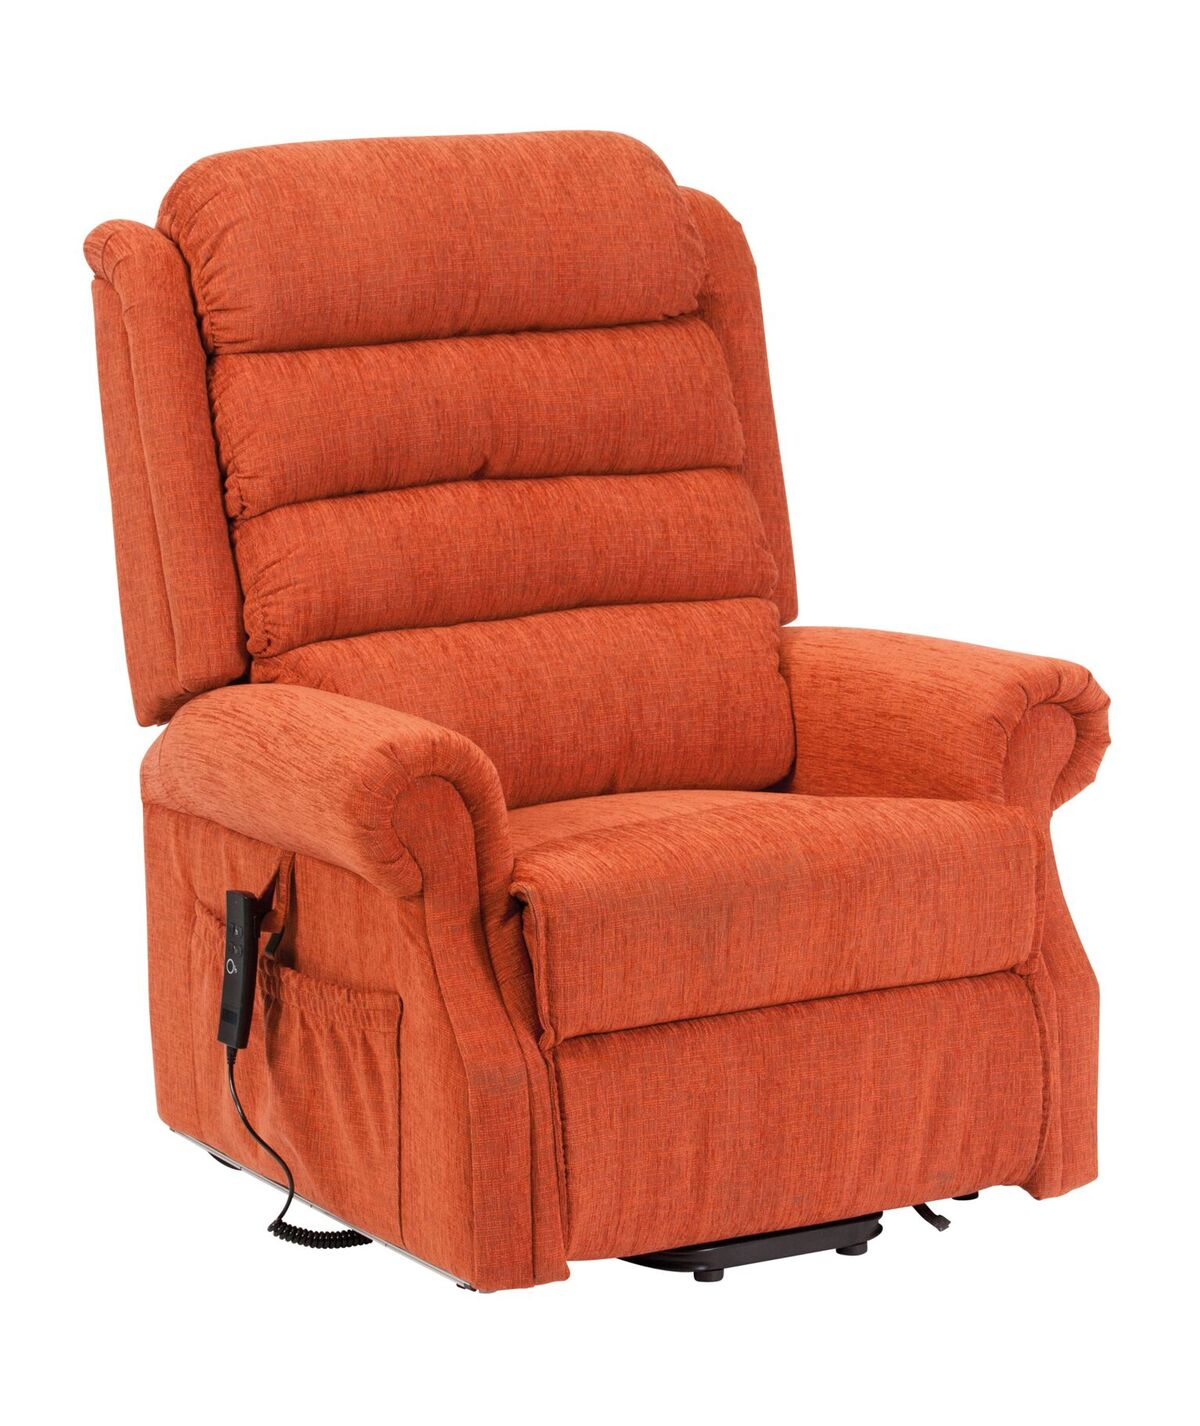 Corwen Dual Motor Riser Recliner - Available to see in Menai Bridge and Valley